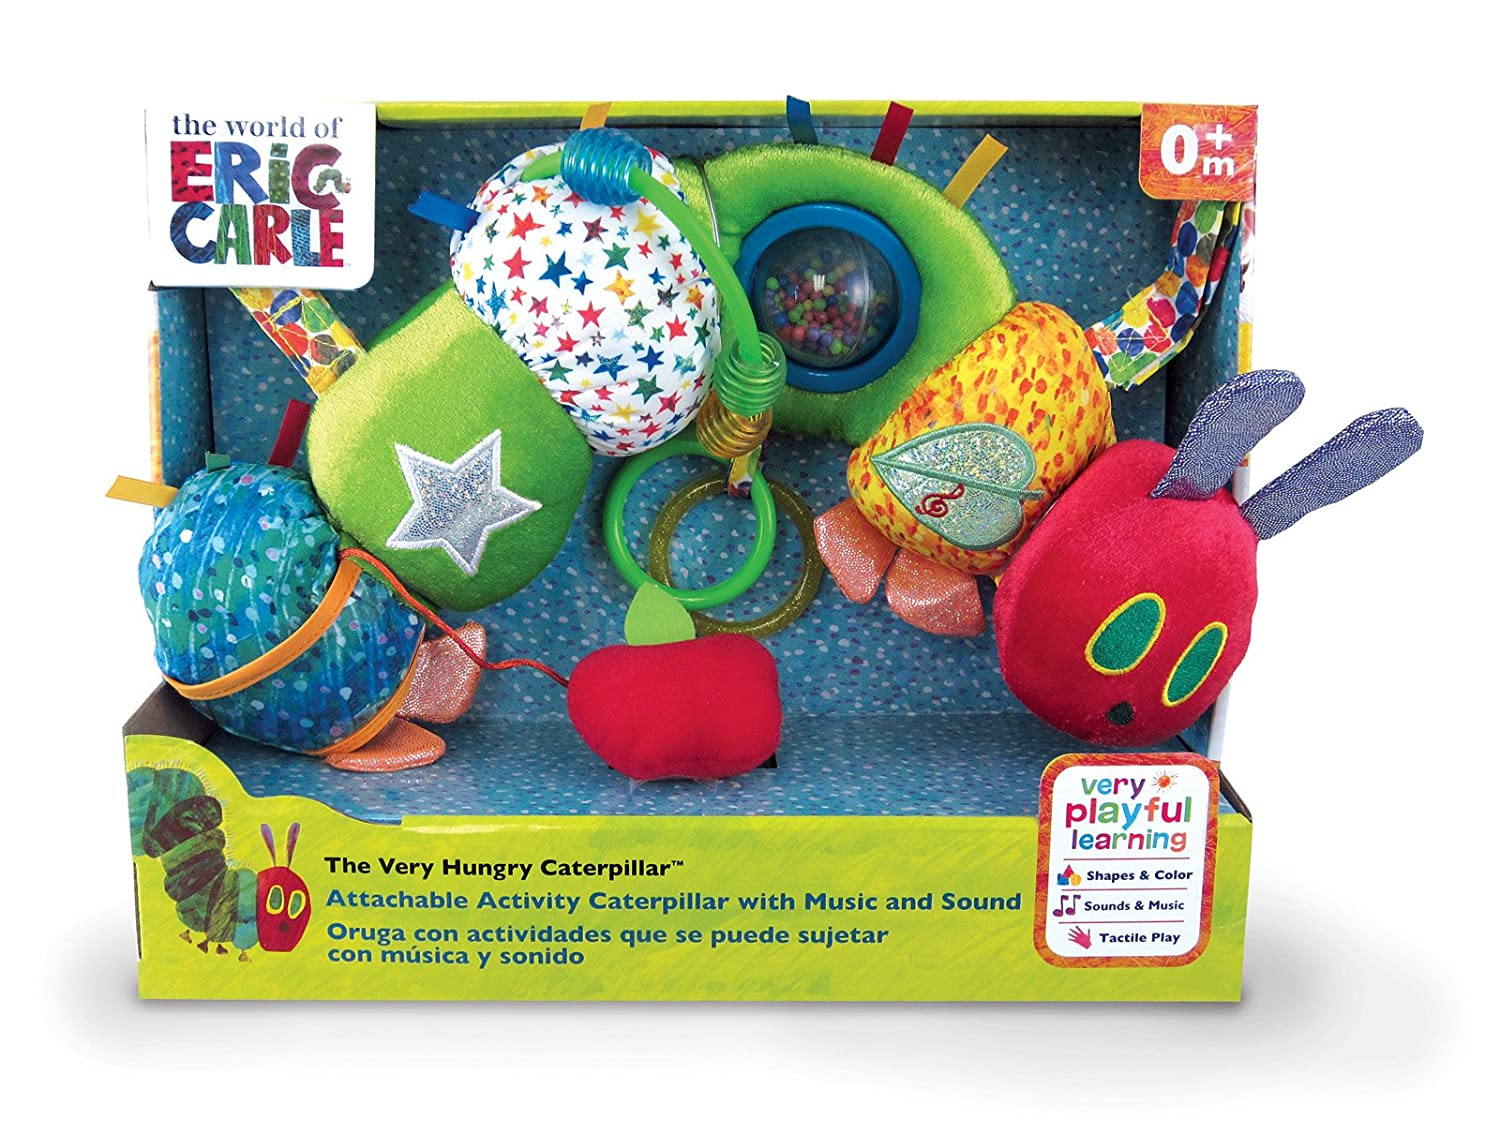 amazon com world of eric carle activity caterpillar baby